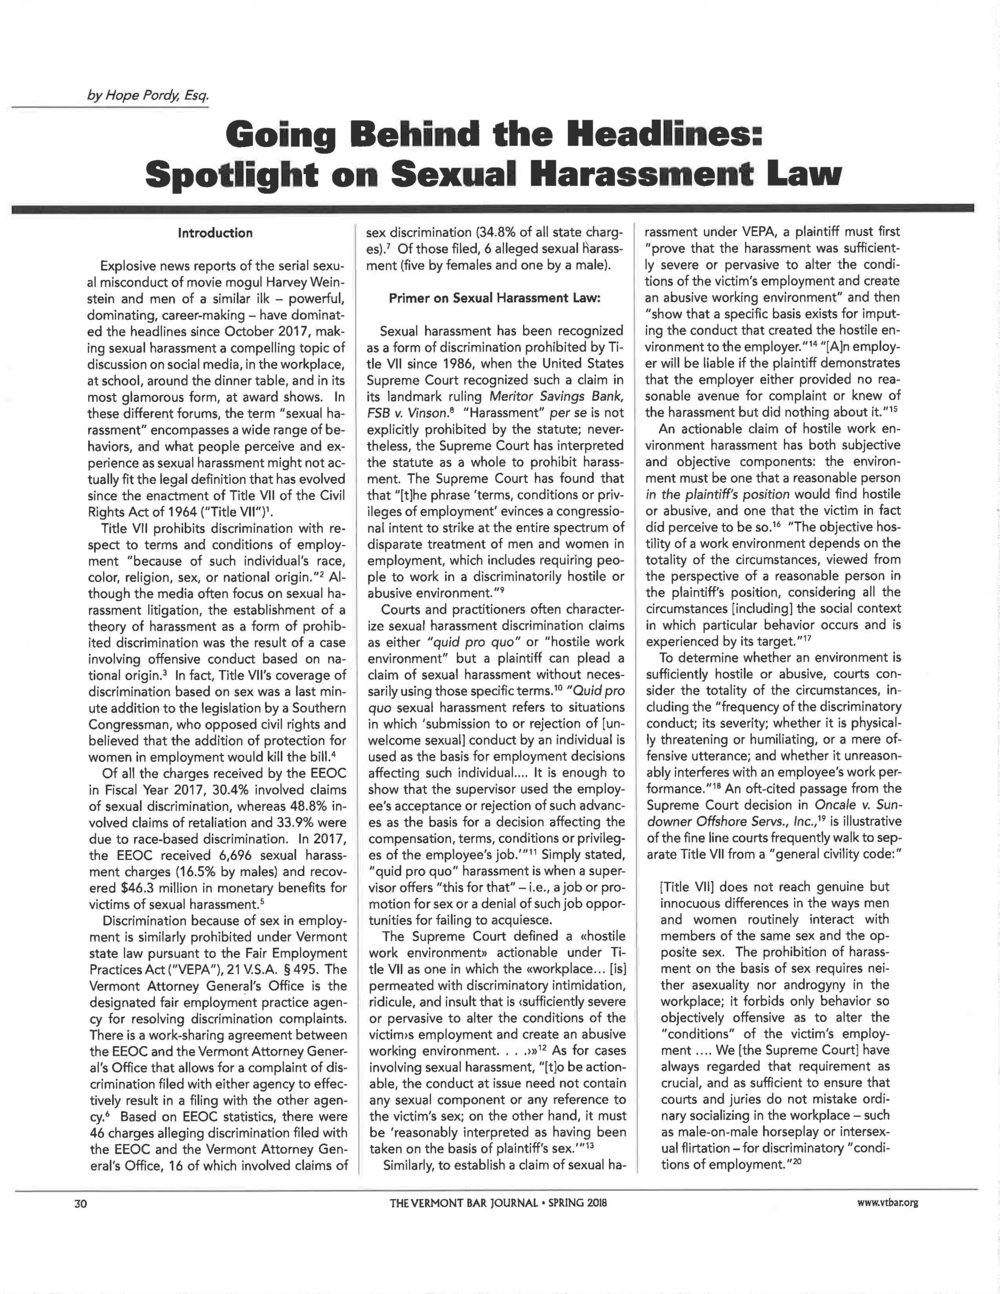 Spotlight on Sexual Harassment by Hope Pordy - VT Bar Journal Spring 2018_Page_1.jpg